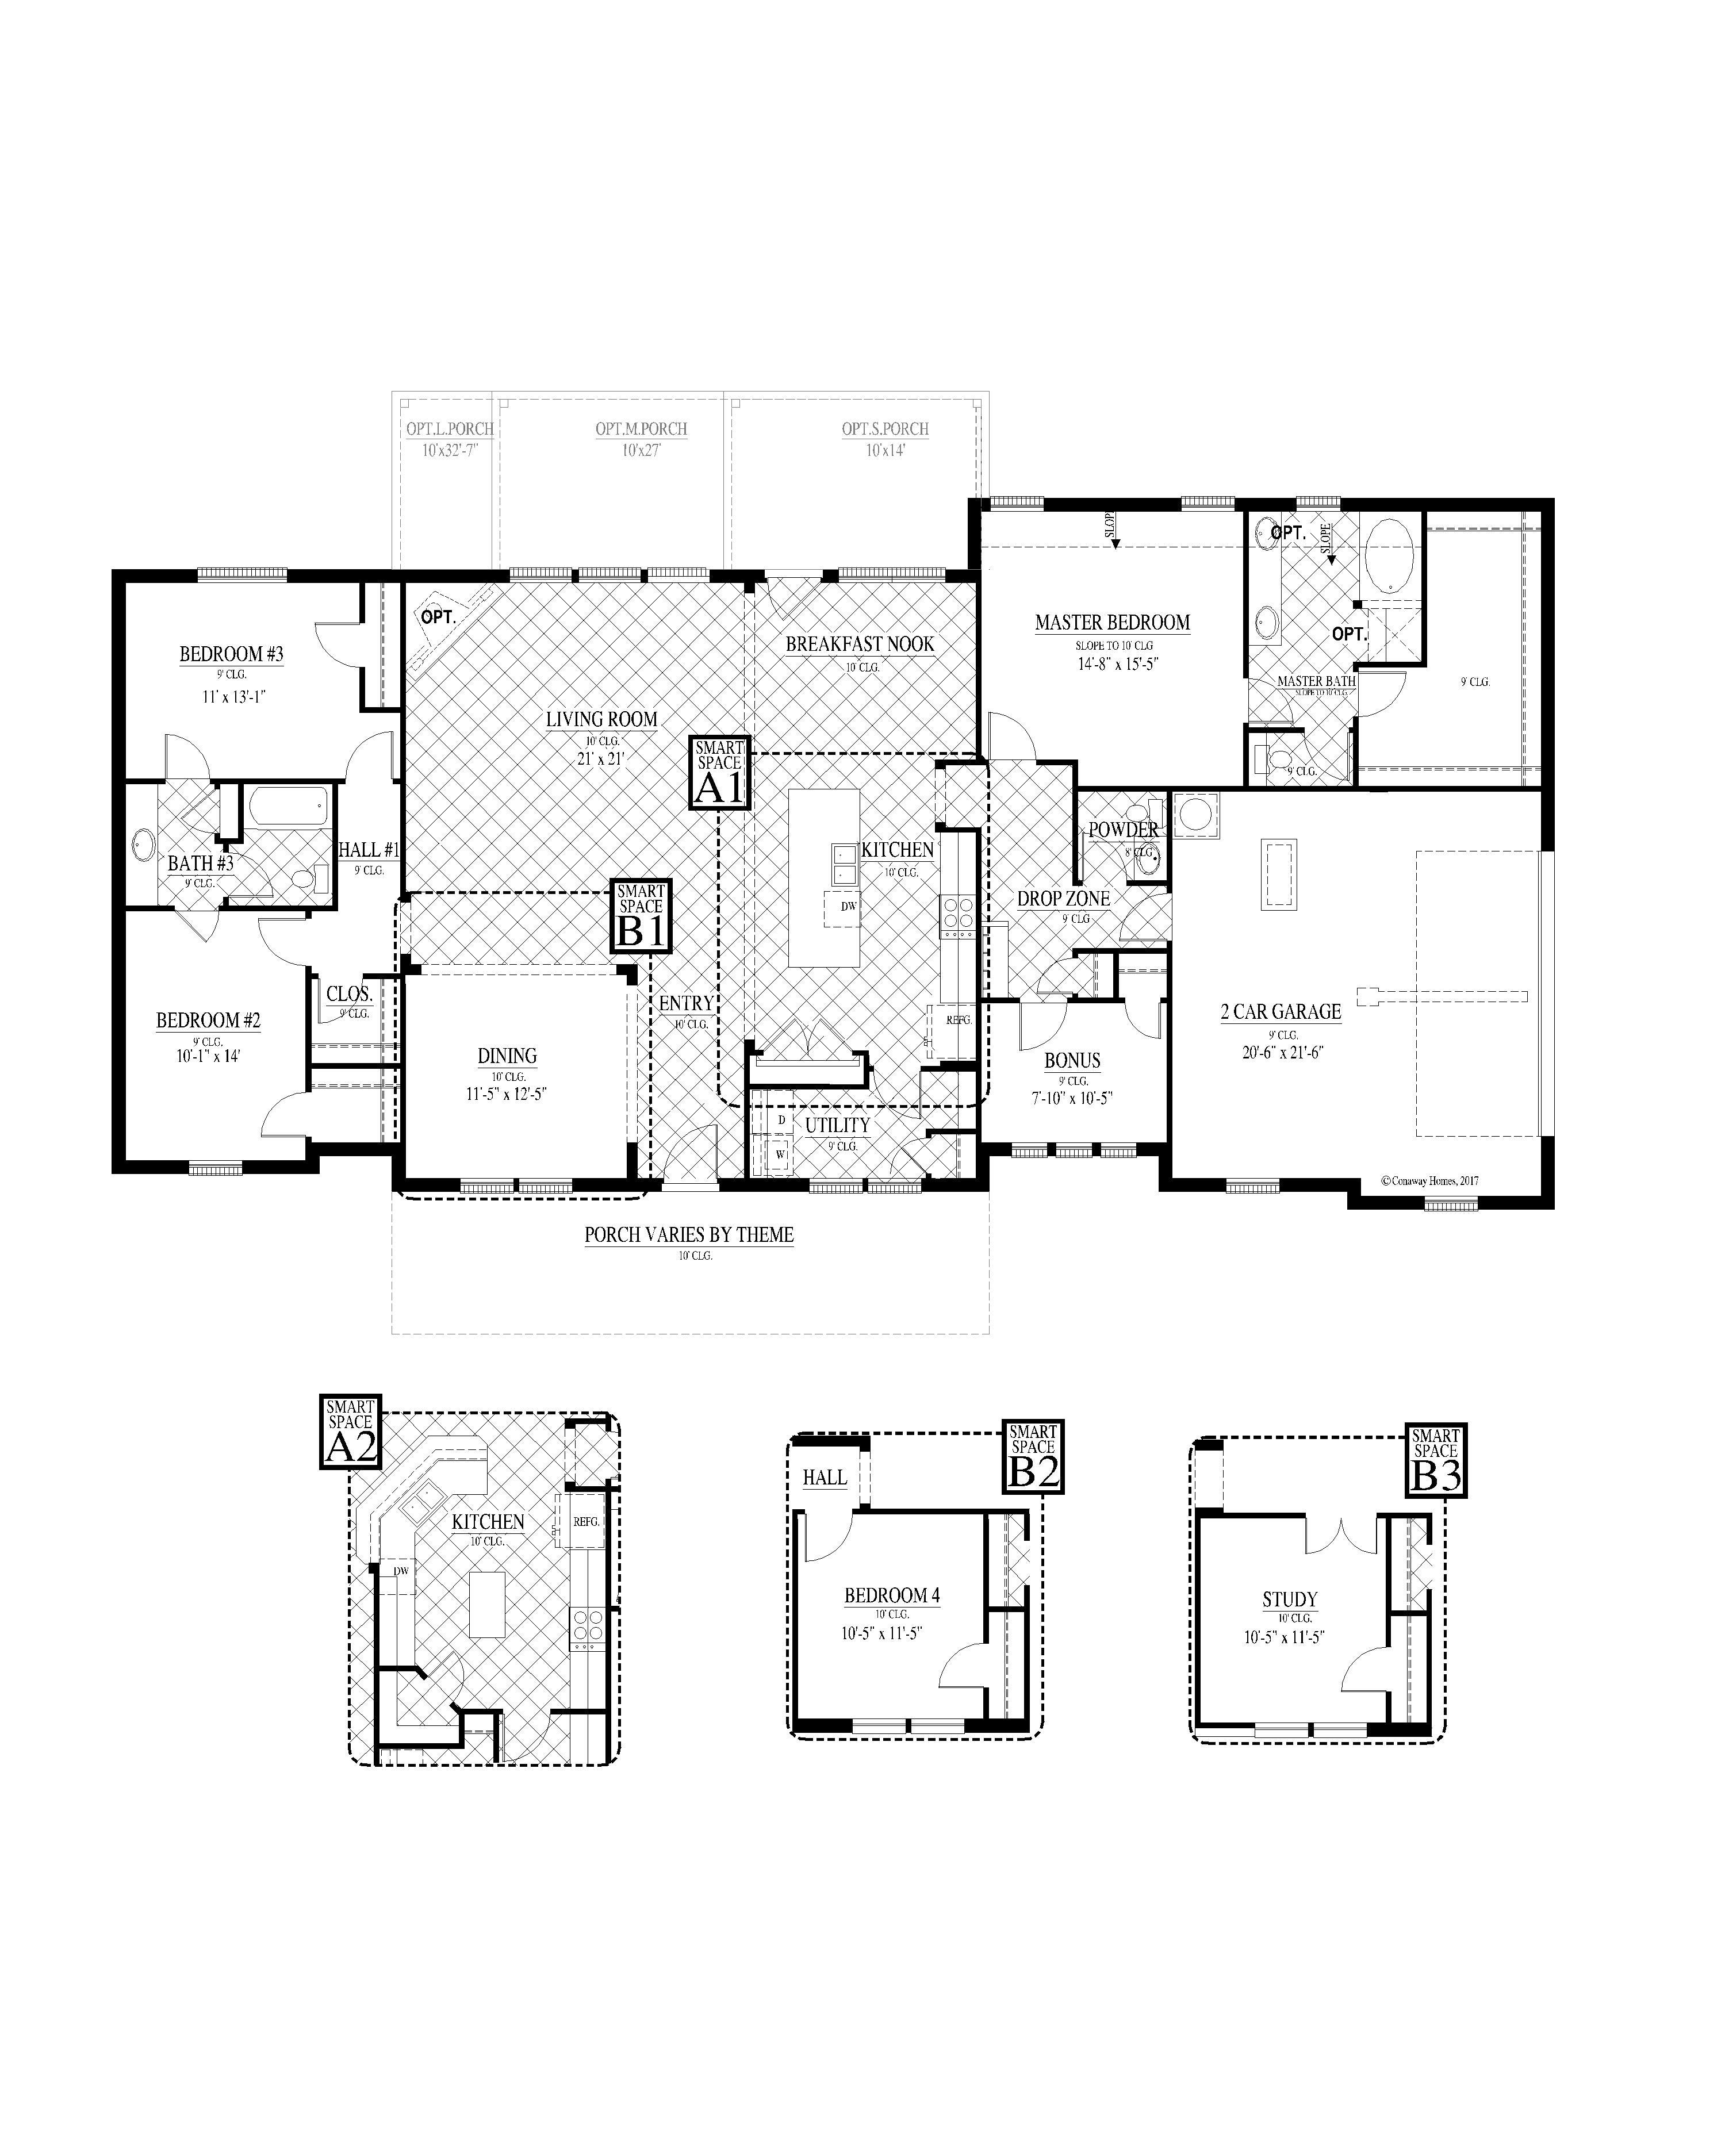 [FLEX PLAN] Hewitt-II Floorplan